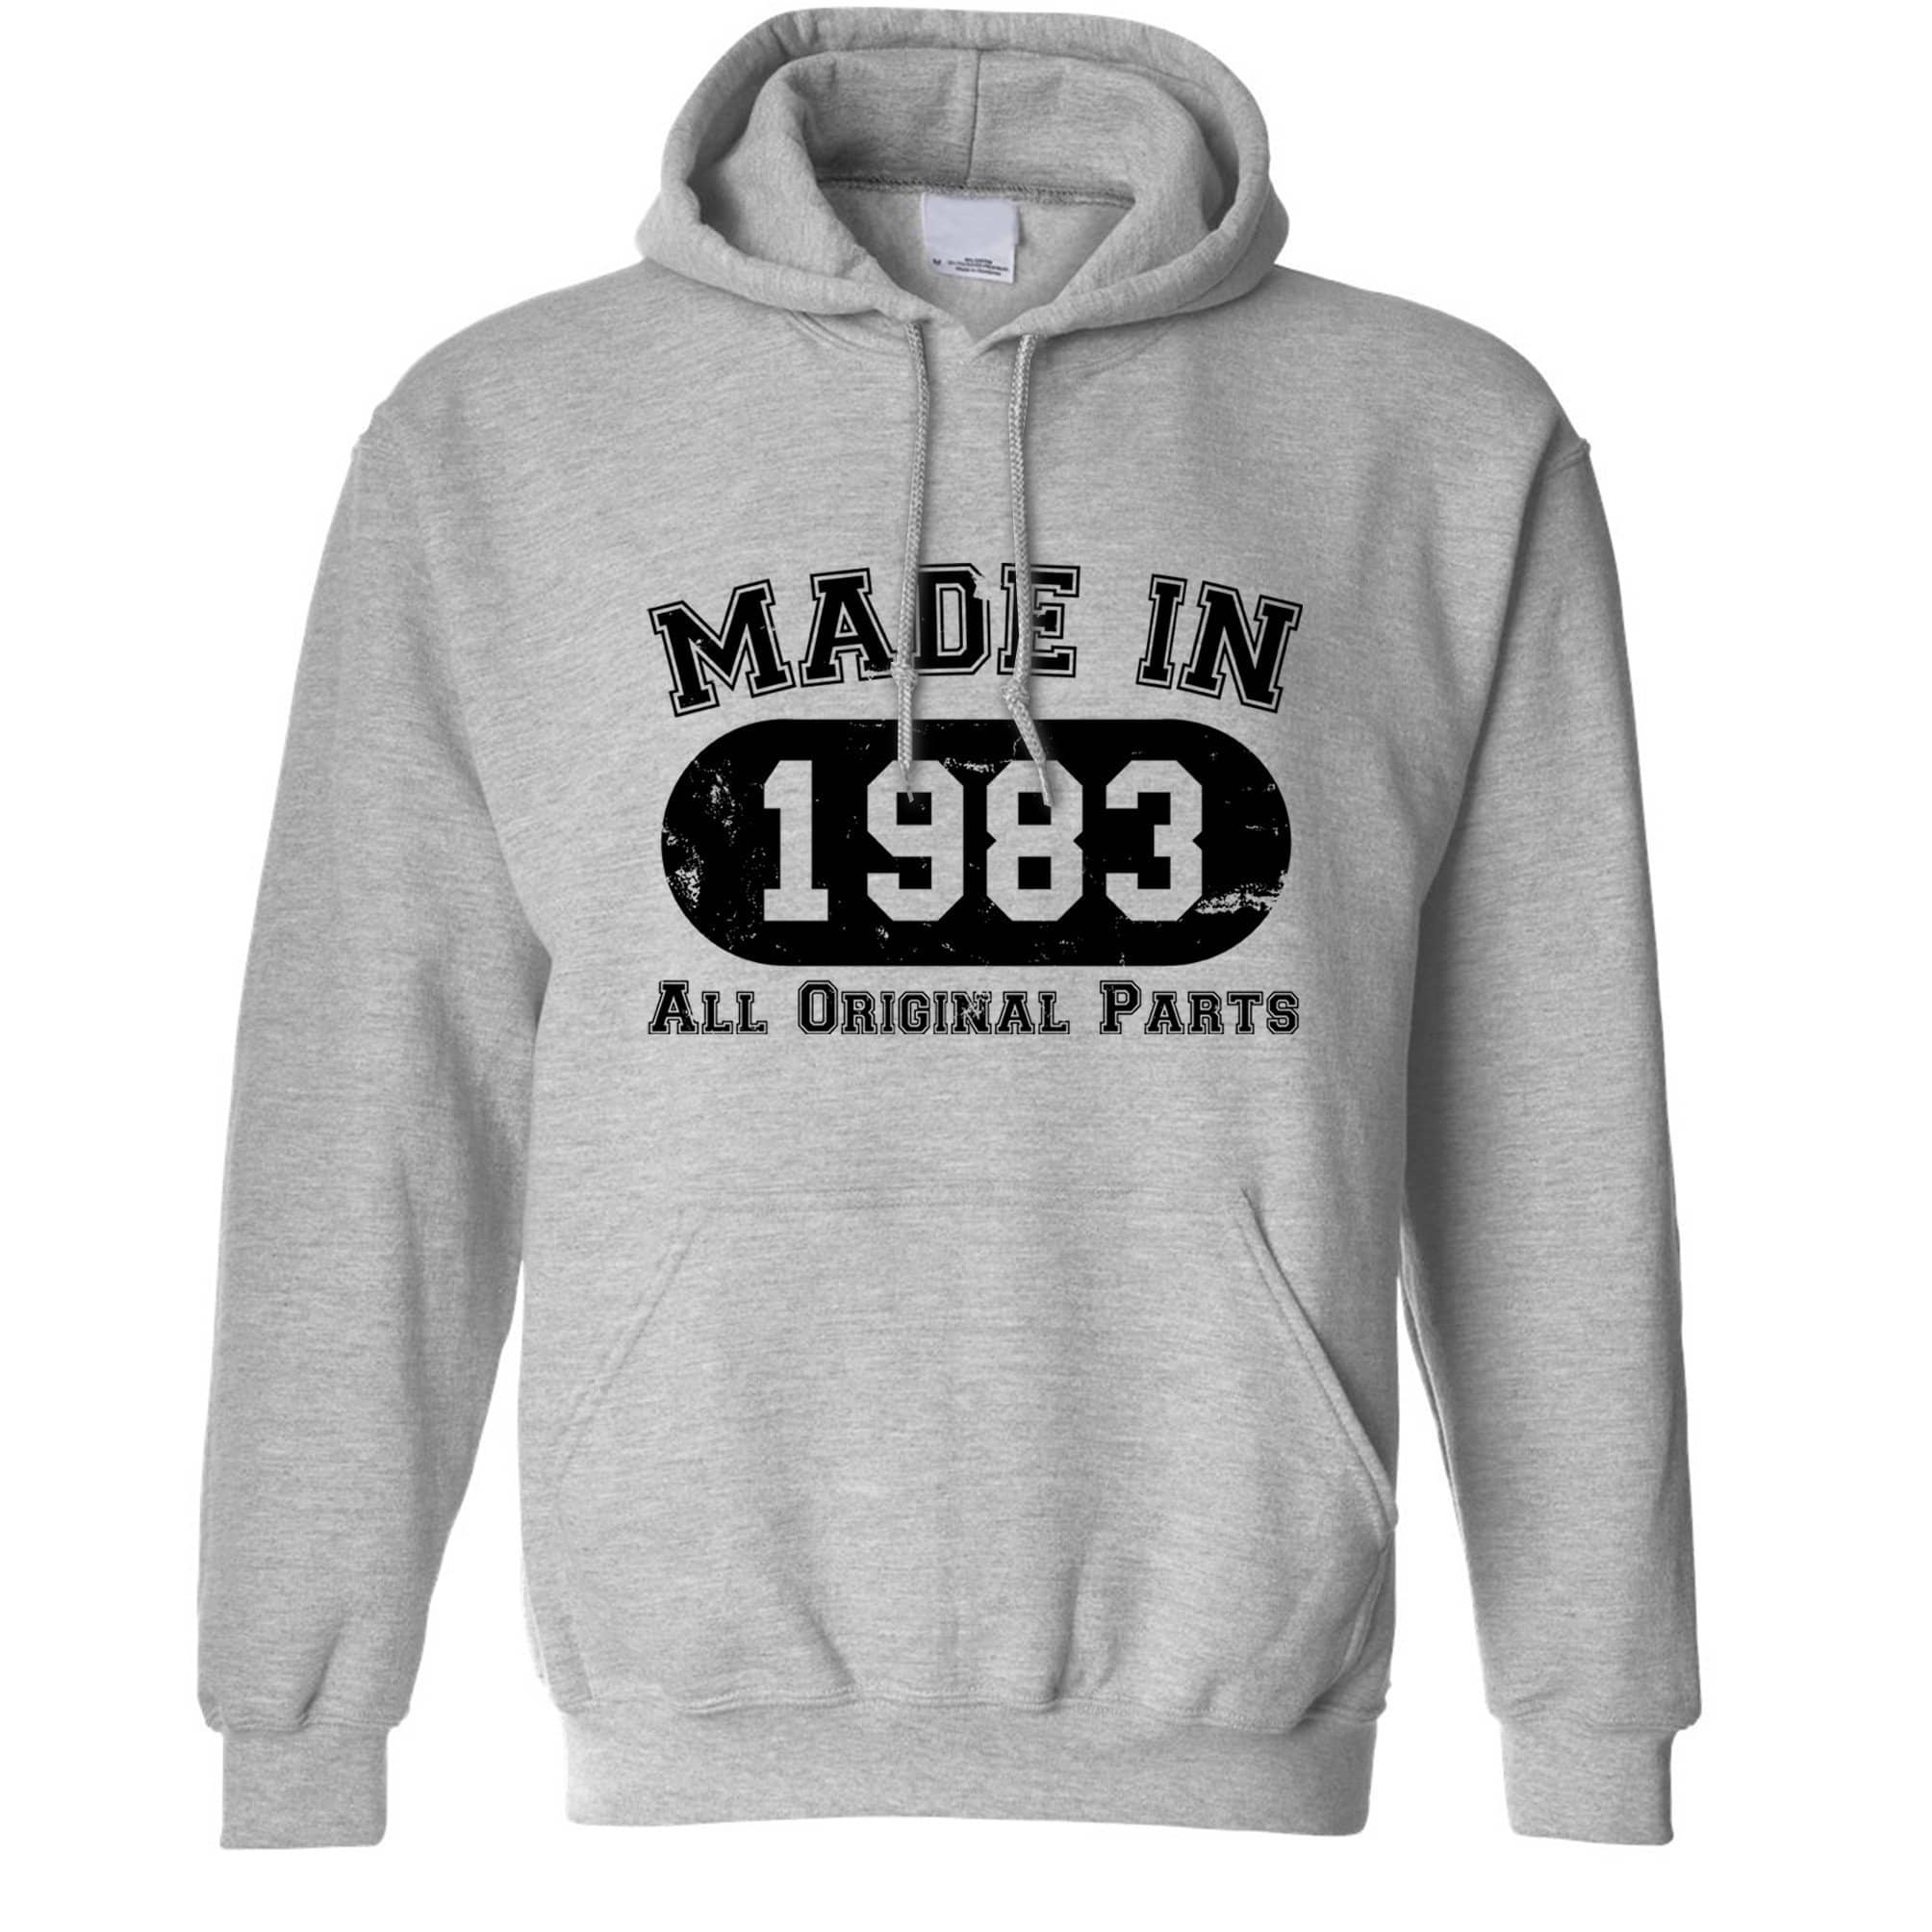 Made in 1983 All Original Parts Hoodie [Distressed]